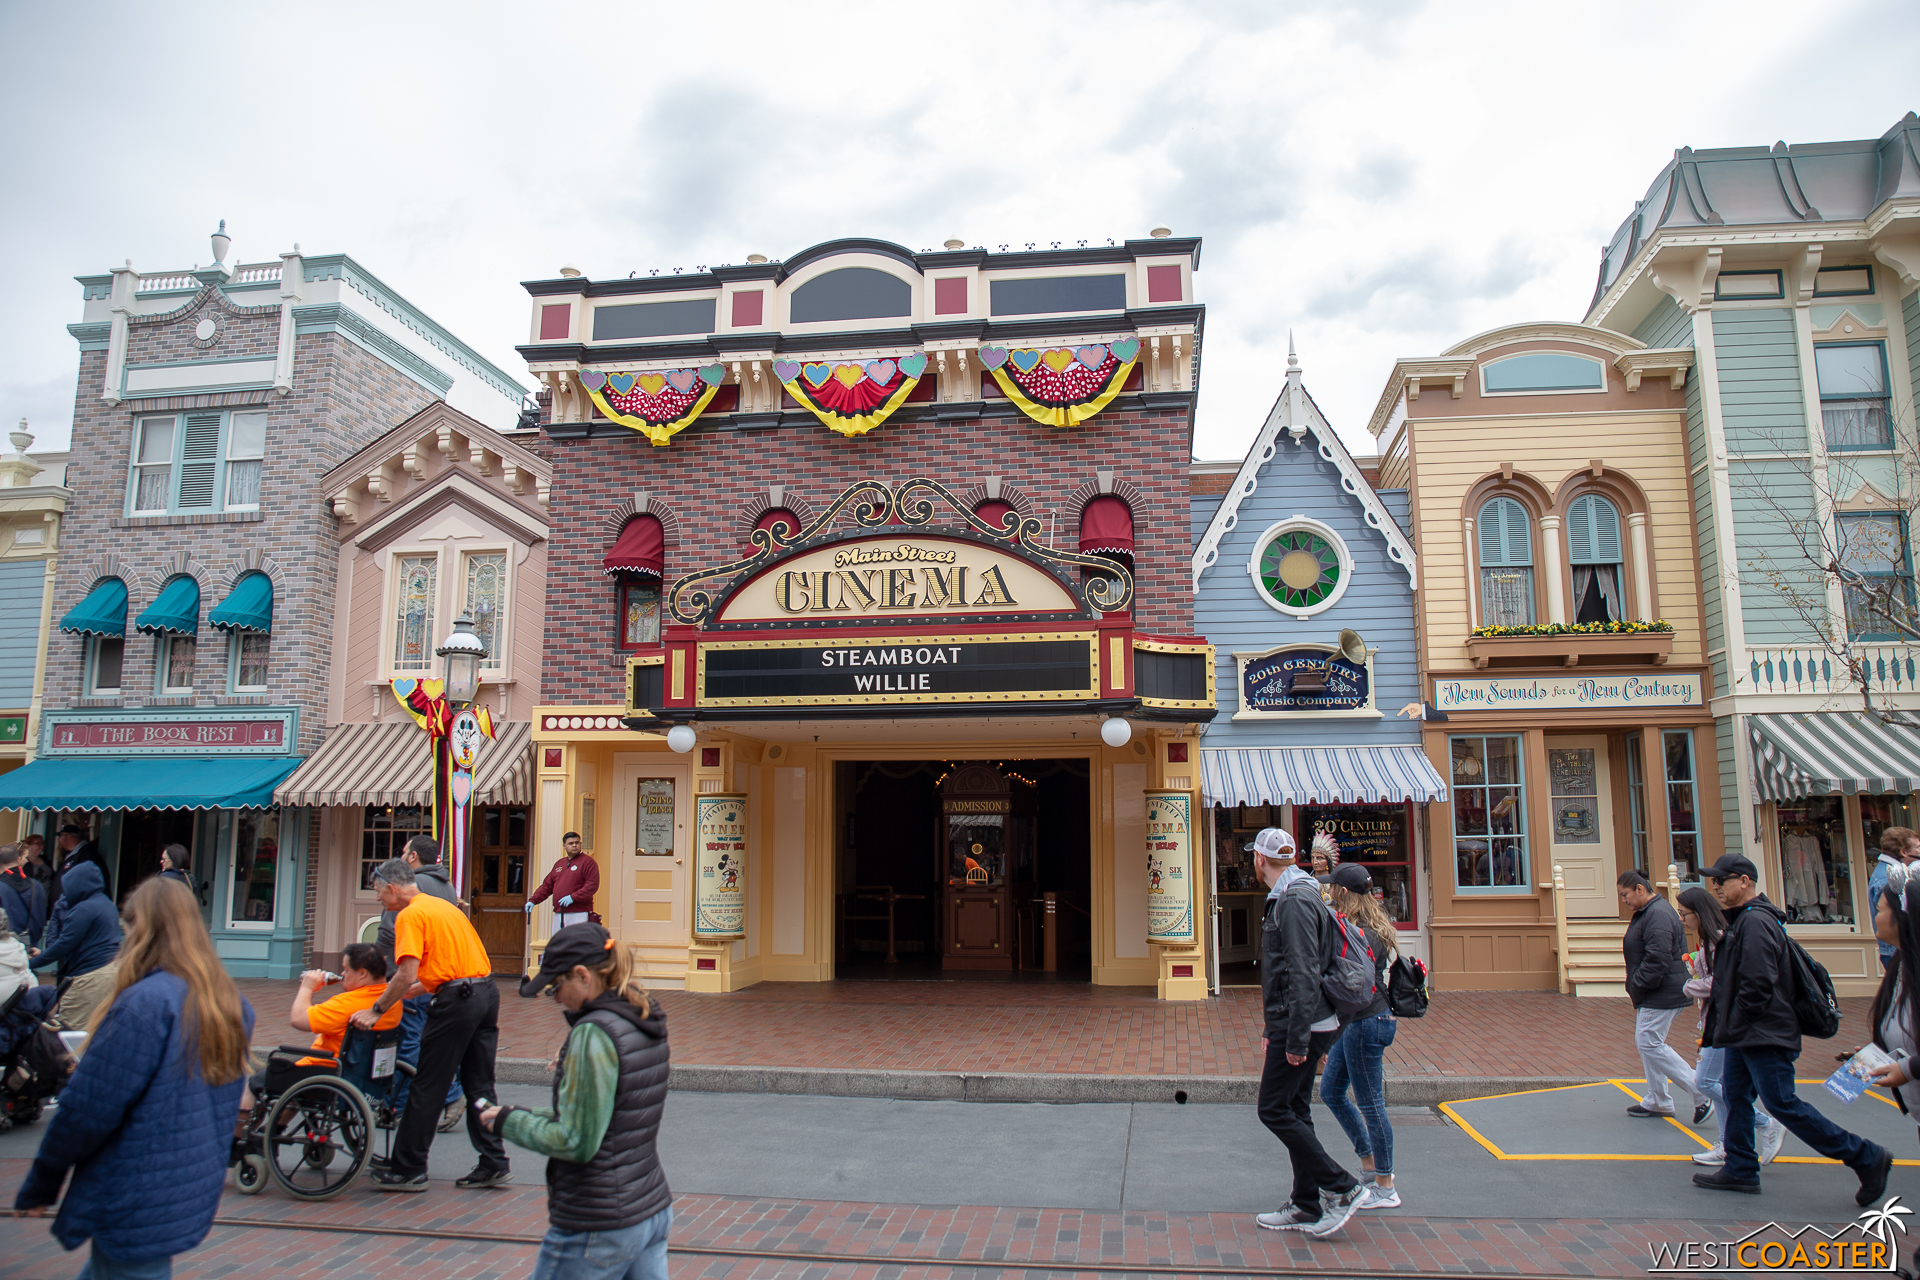 They repainted the entire thing to represent Mickey, and it's basically the coolest. Yellow on bottom for the shoes and black, white and red up top!